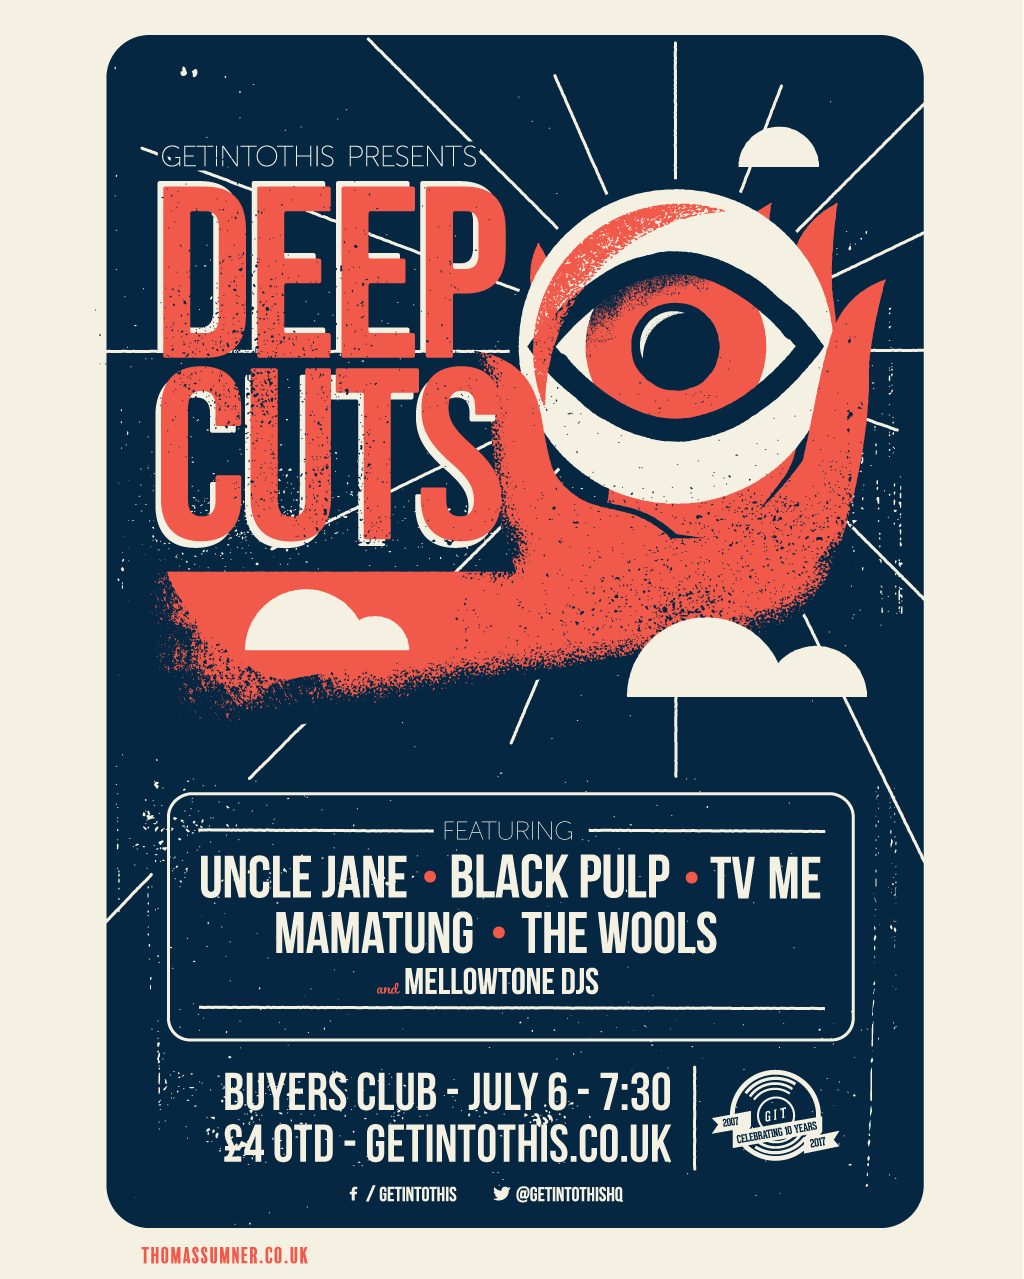 Getintothis presents Deep Cuts live - July 2017